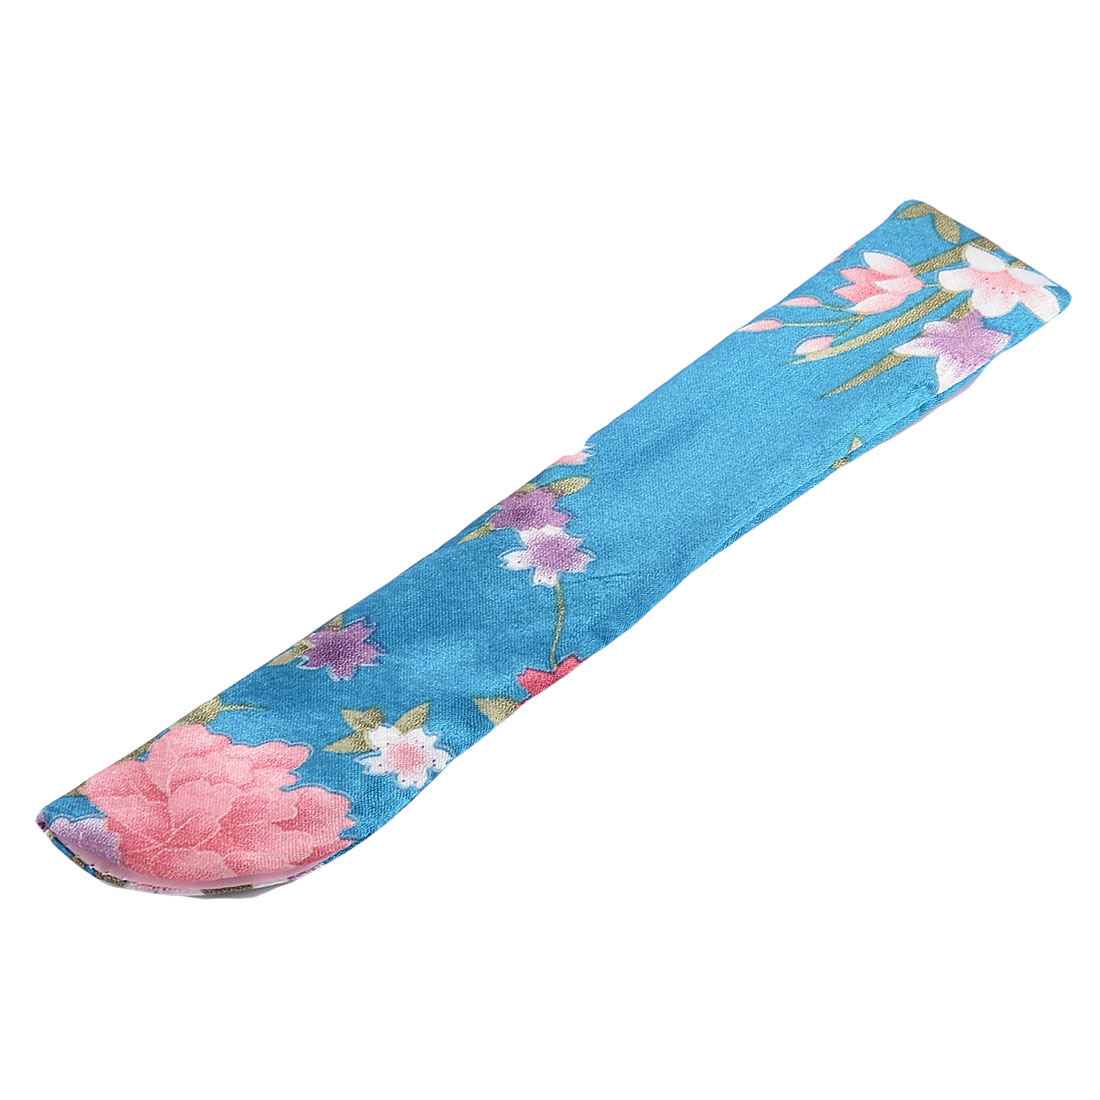 Fabric Floral Pattern Printed Classic Design Soft Folding Hand Fan Pouch Bag